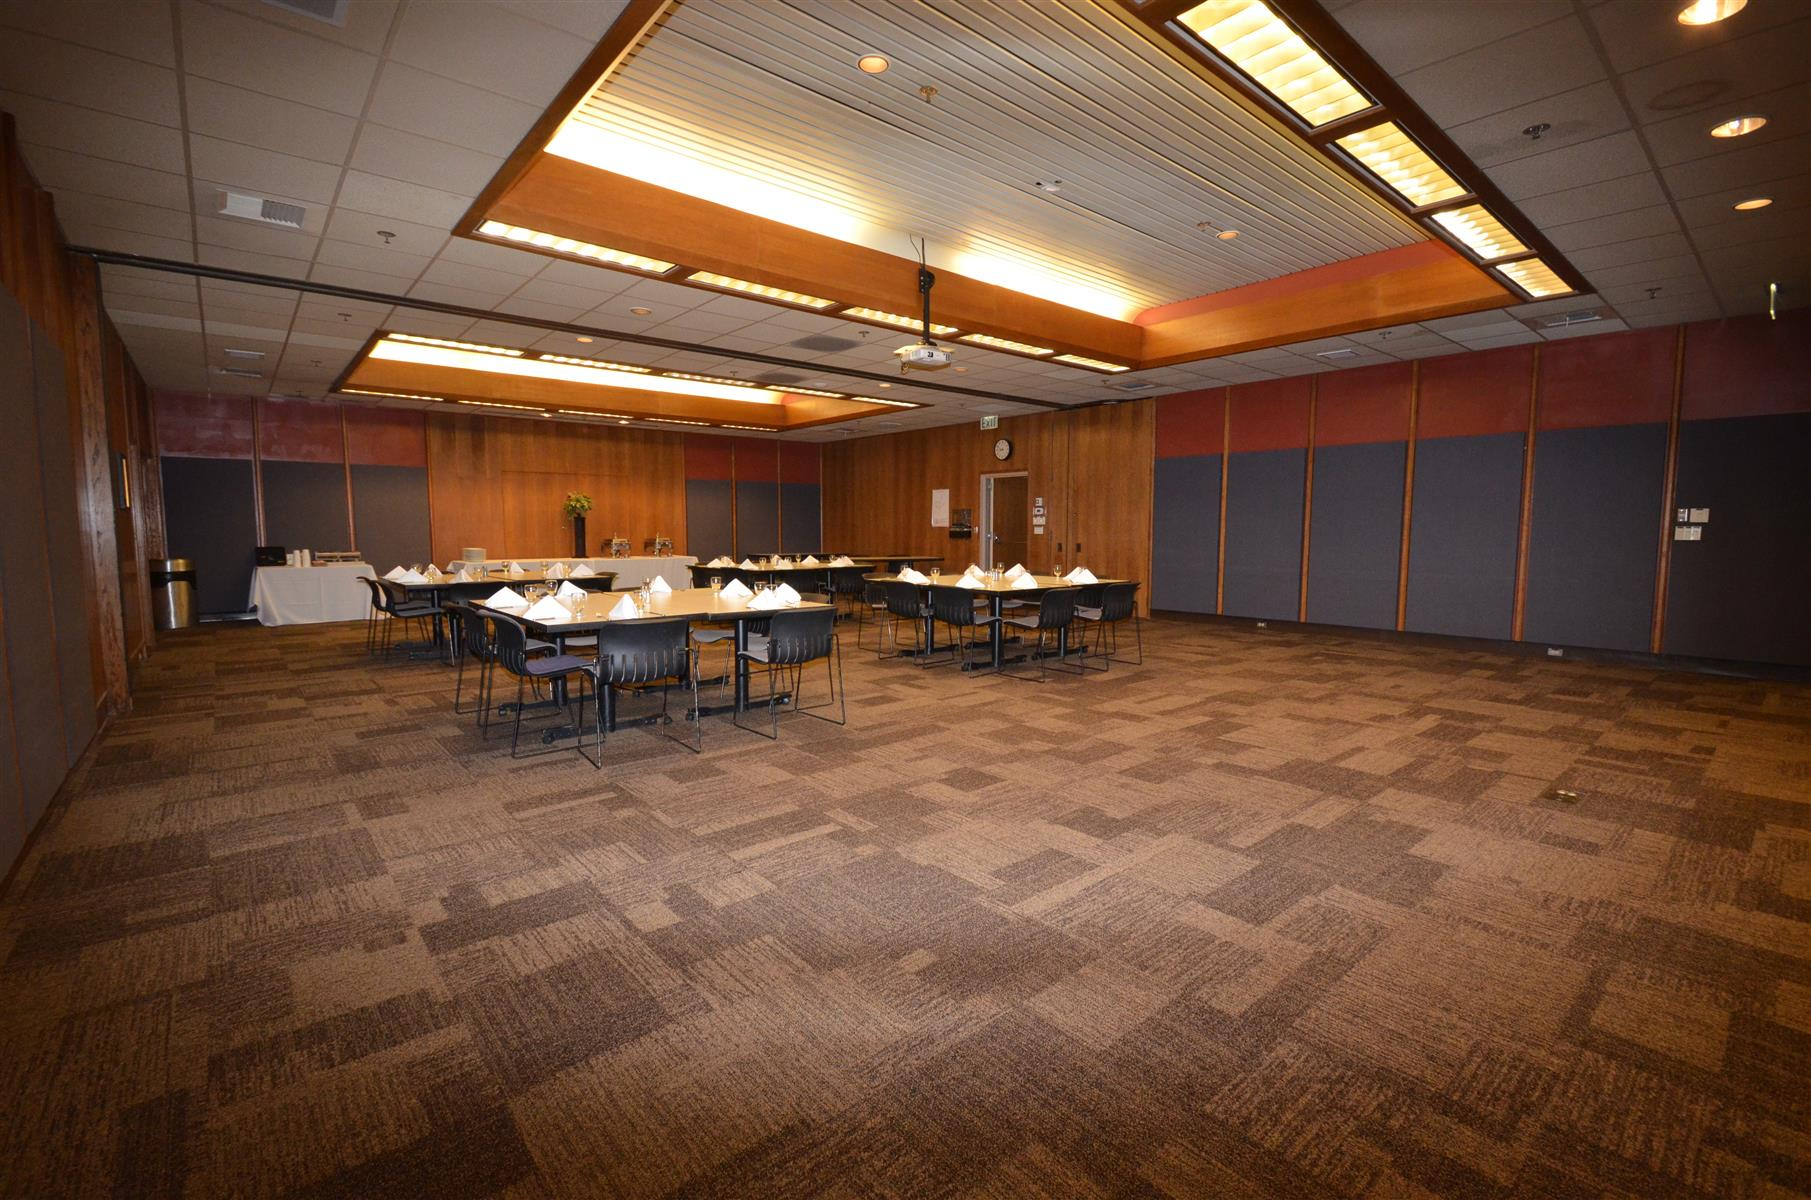 SOMO Village (1100 Valley House Drive) - Event Center - Board Room